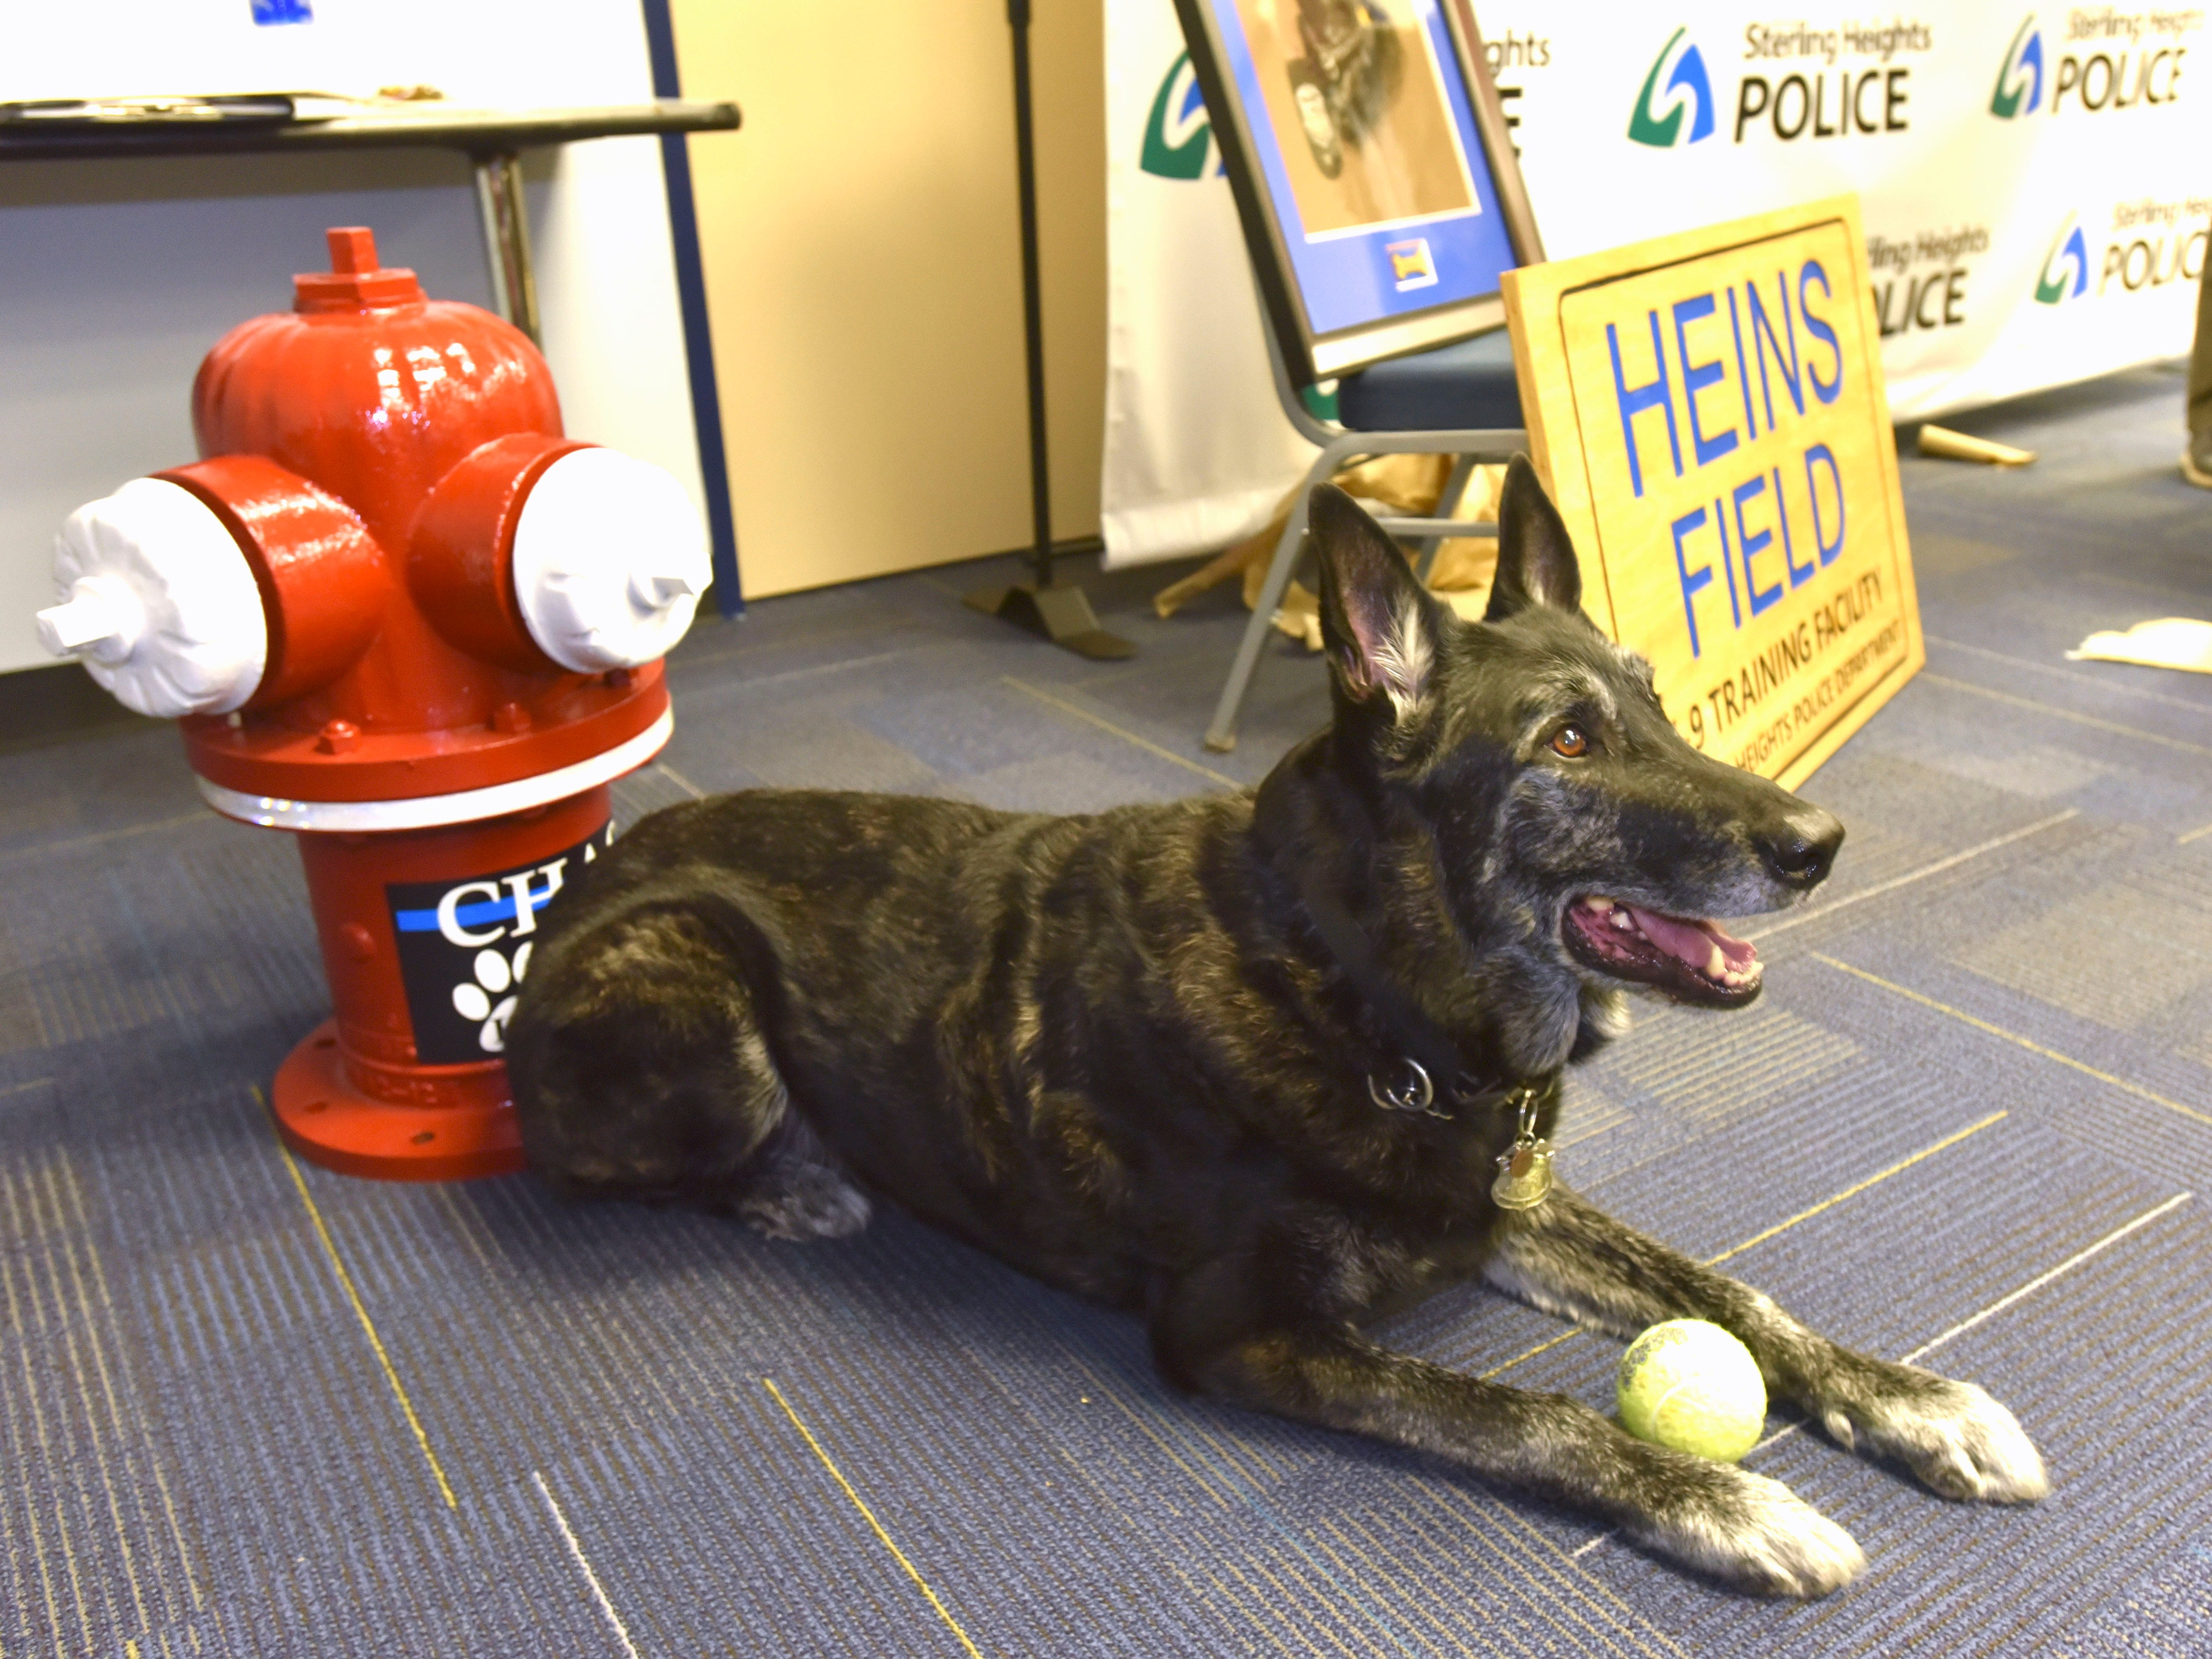 Chase poses for photographers in front of retirement gifts, which include a fire hydrant from the Sterling Heights Fire Department and Department of Public Works, a painting from the officers of his training group and a Heins Field K-9 Training Facility sign that will be displayed at the training facility at Baumgartner Park in the city.